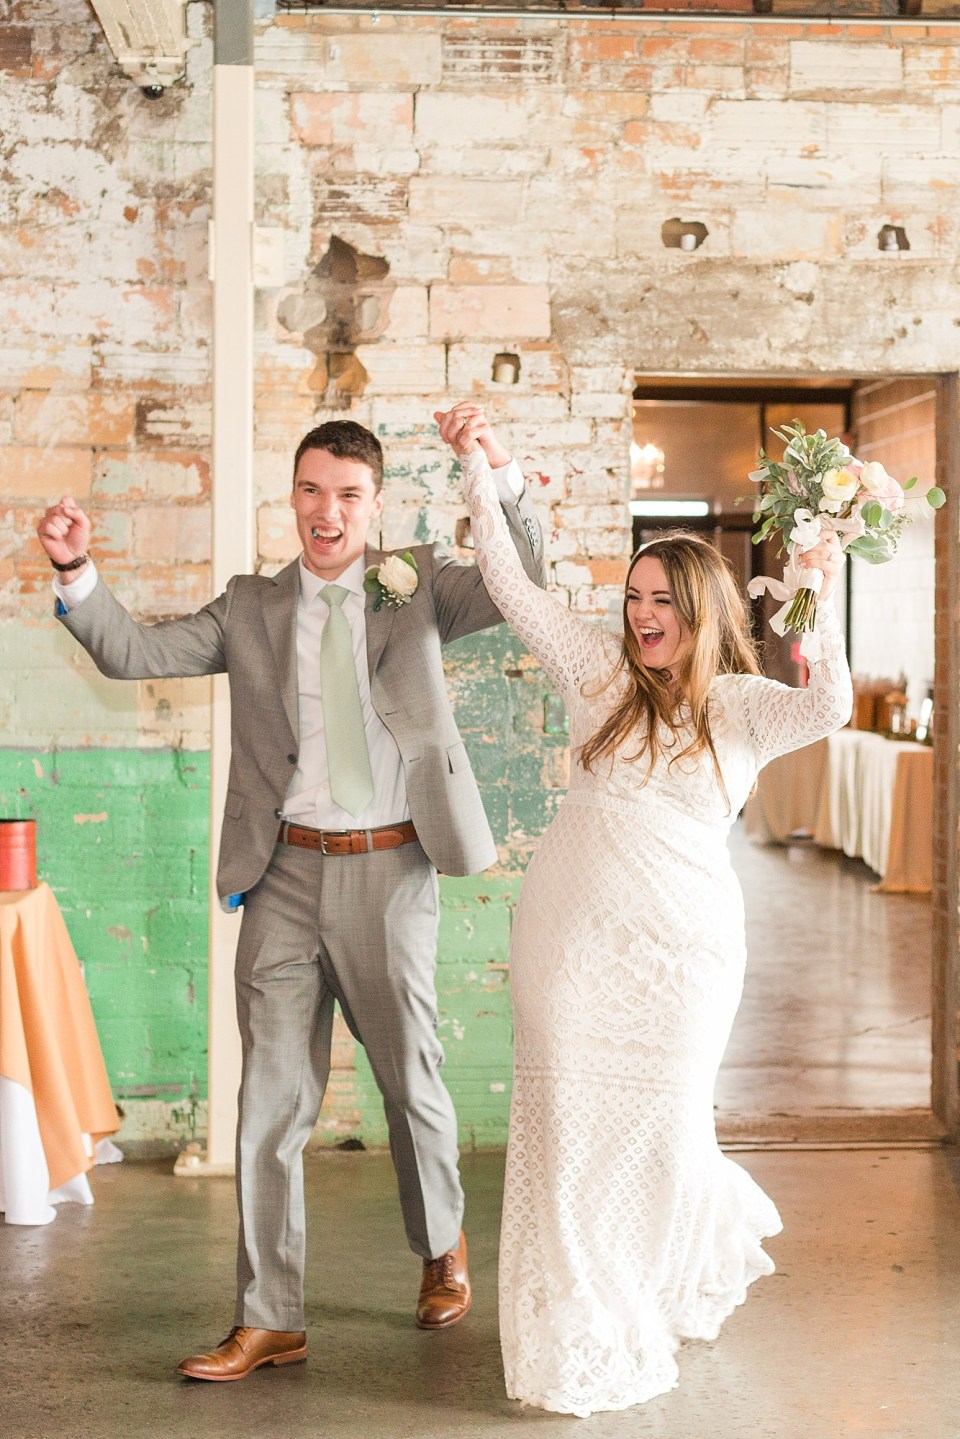 A newlywed couple dances into their wedding reception